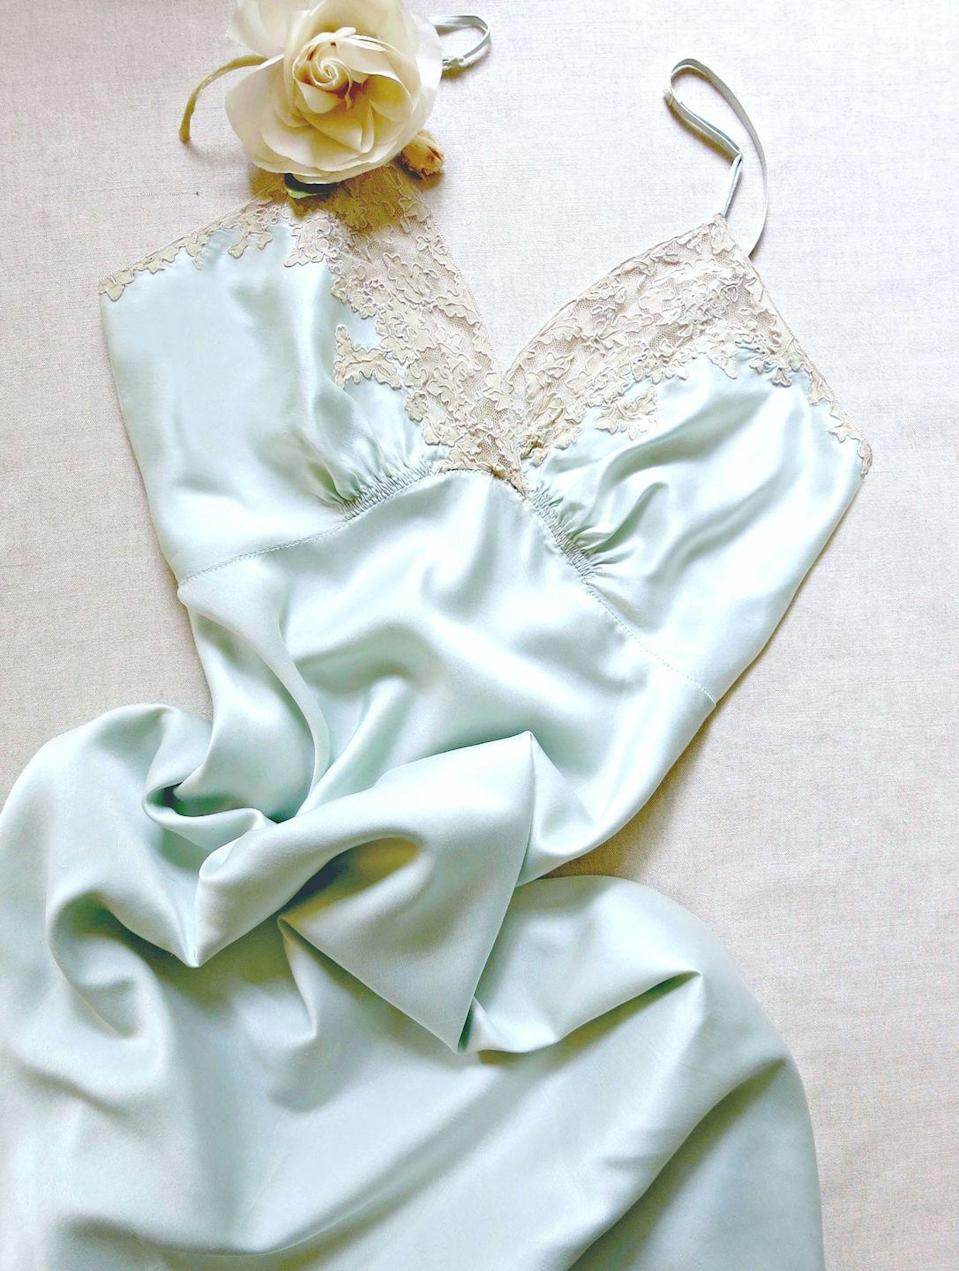 """<p><strong>Where:</strong> NYC</p><p><strong>MO: </strong>Founded by Mary Braeunig, a former fashion editor at <em>Vanity Fair </em>and <em>Harper's BAZAAR</em><em>,</em> this Etsy shopped is filled with exquisite silk-and-lace lingerie and dresses from the '30s and '40s.</p><p><a class=""""link rapid-noclick-resp"""" href=""""https://go.redirectingat.com?id=74968X1596630&url=https%3A%2F%2Fwww.etsy.com%2Fshop%2FVanitiesFair&sref=https%3A%2F%2Fwww.harpersbazaar.com%2Ffashion%2Ftrends%2Fg33457565%2Fbest-etsy-vintage-shops%2F"""" rel=""""nofollow noopener"""" target=""""_blank"""" data-ylk=""""slk:Shop Now"""">Shop Now</a></p>"""